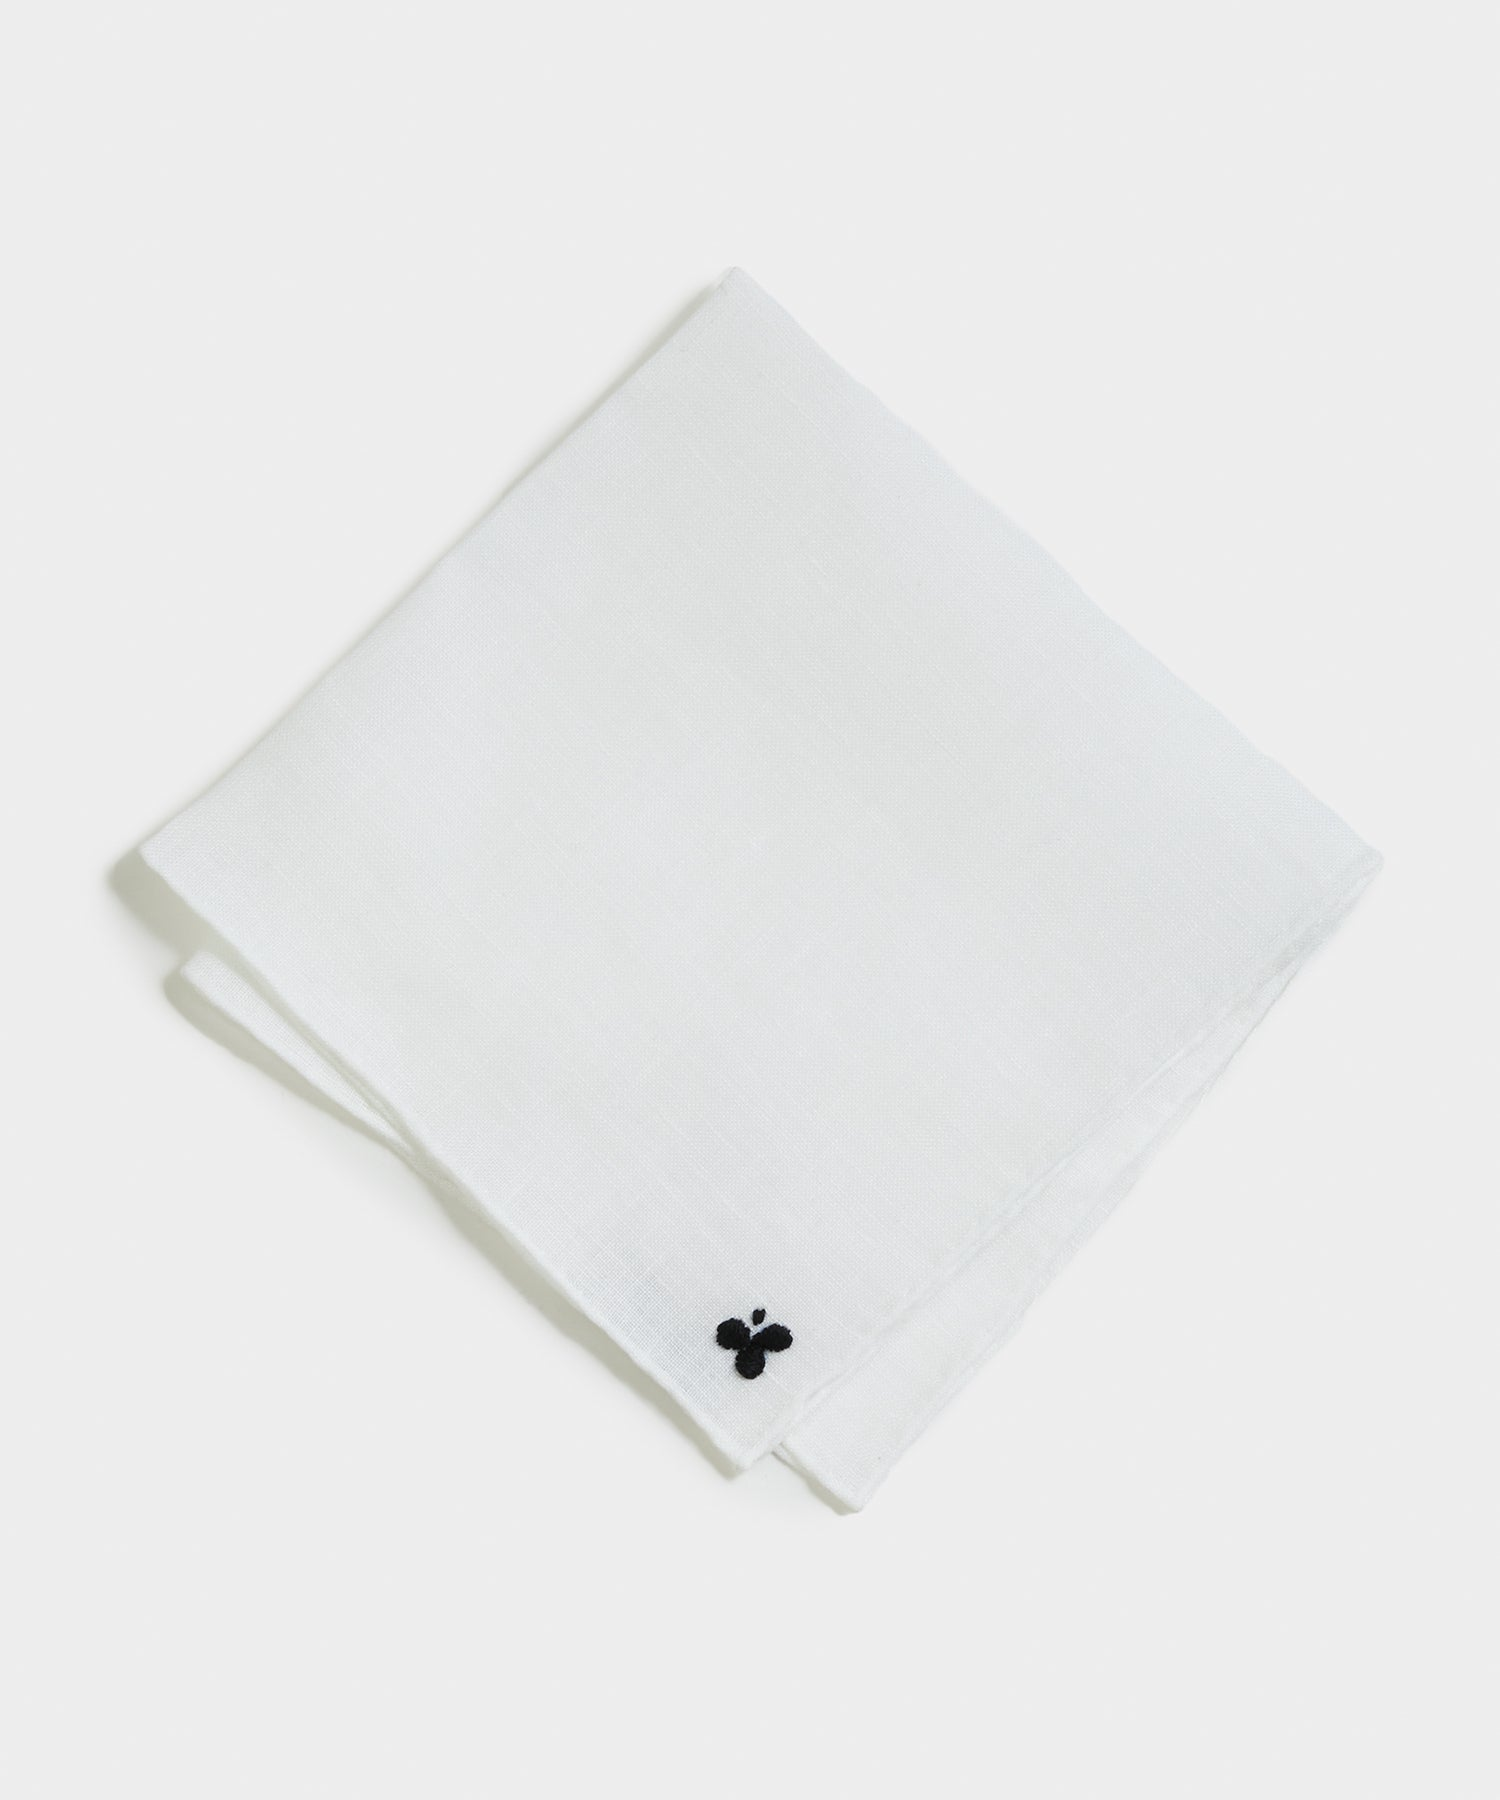 Handmade Italian Linen Pocket Square with Club Embroidery